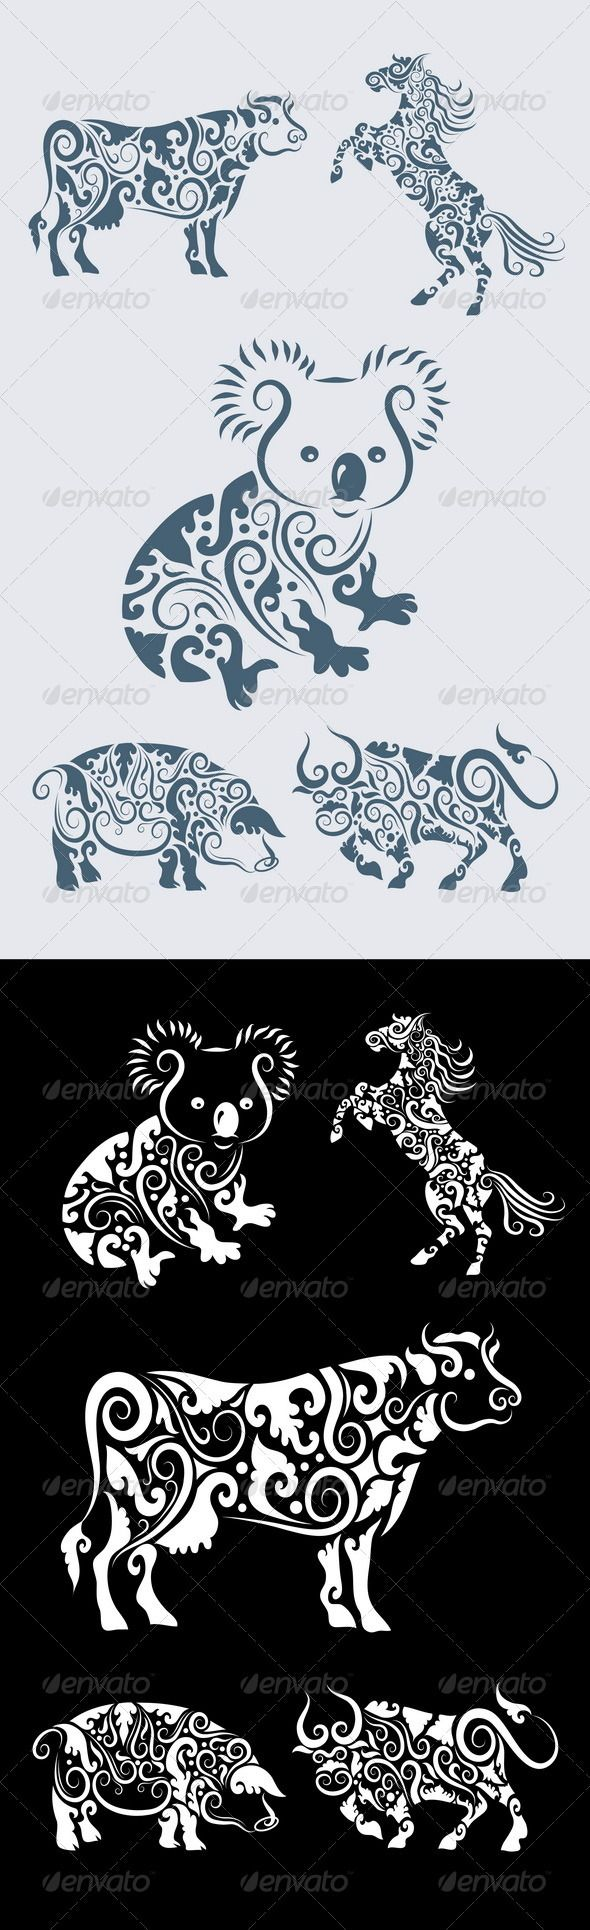 Koala ornament and friends (5 animal ornaments) #GraphicRiver 5 animals with floral ornament decoration. Use for tattoo, t-shirt or any design you want.